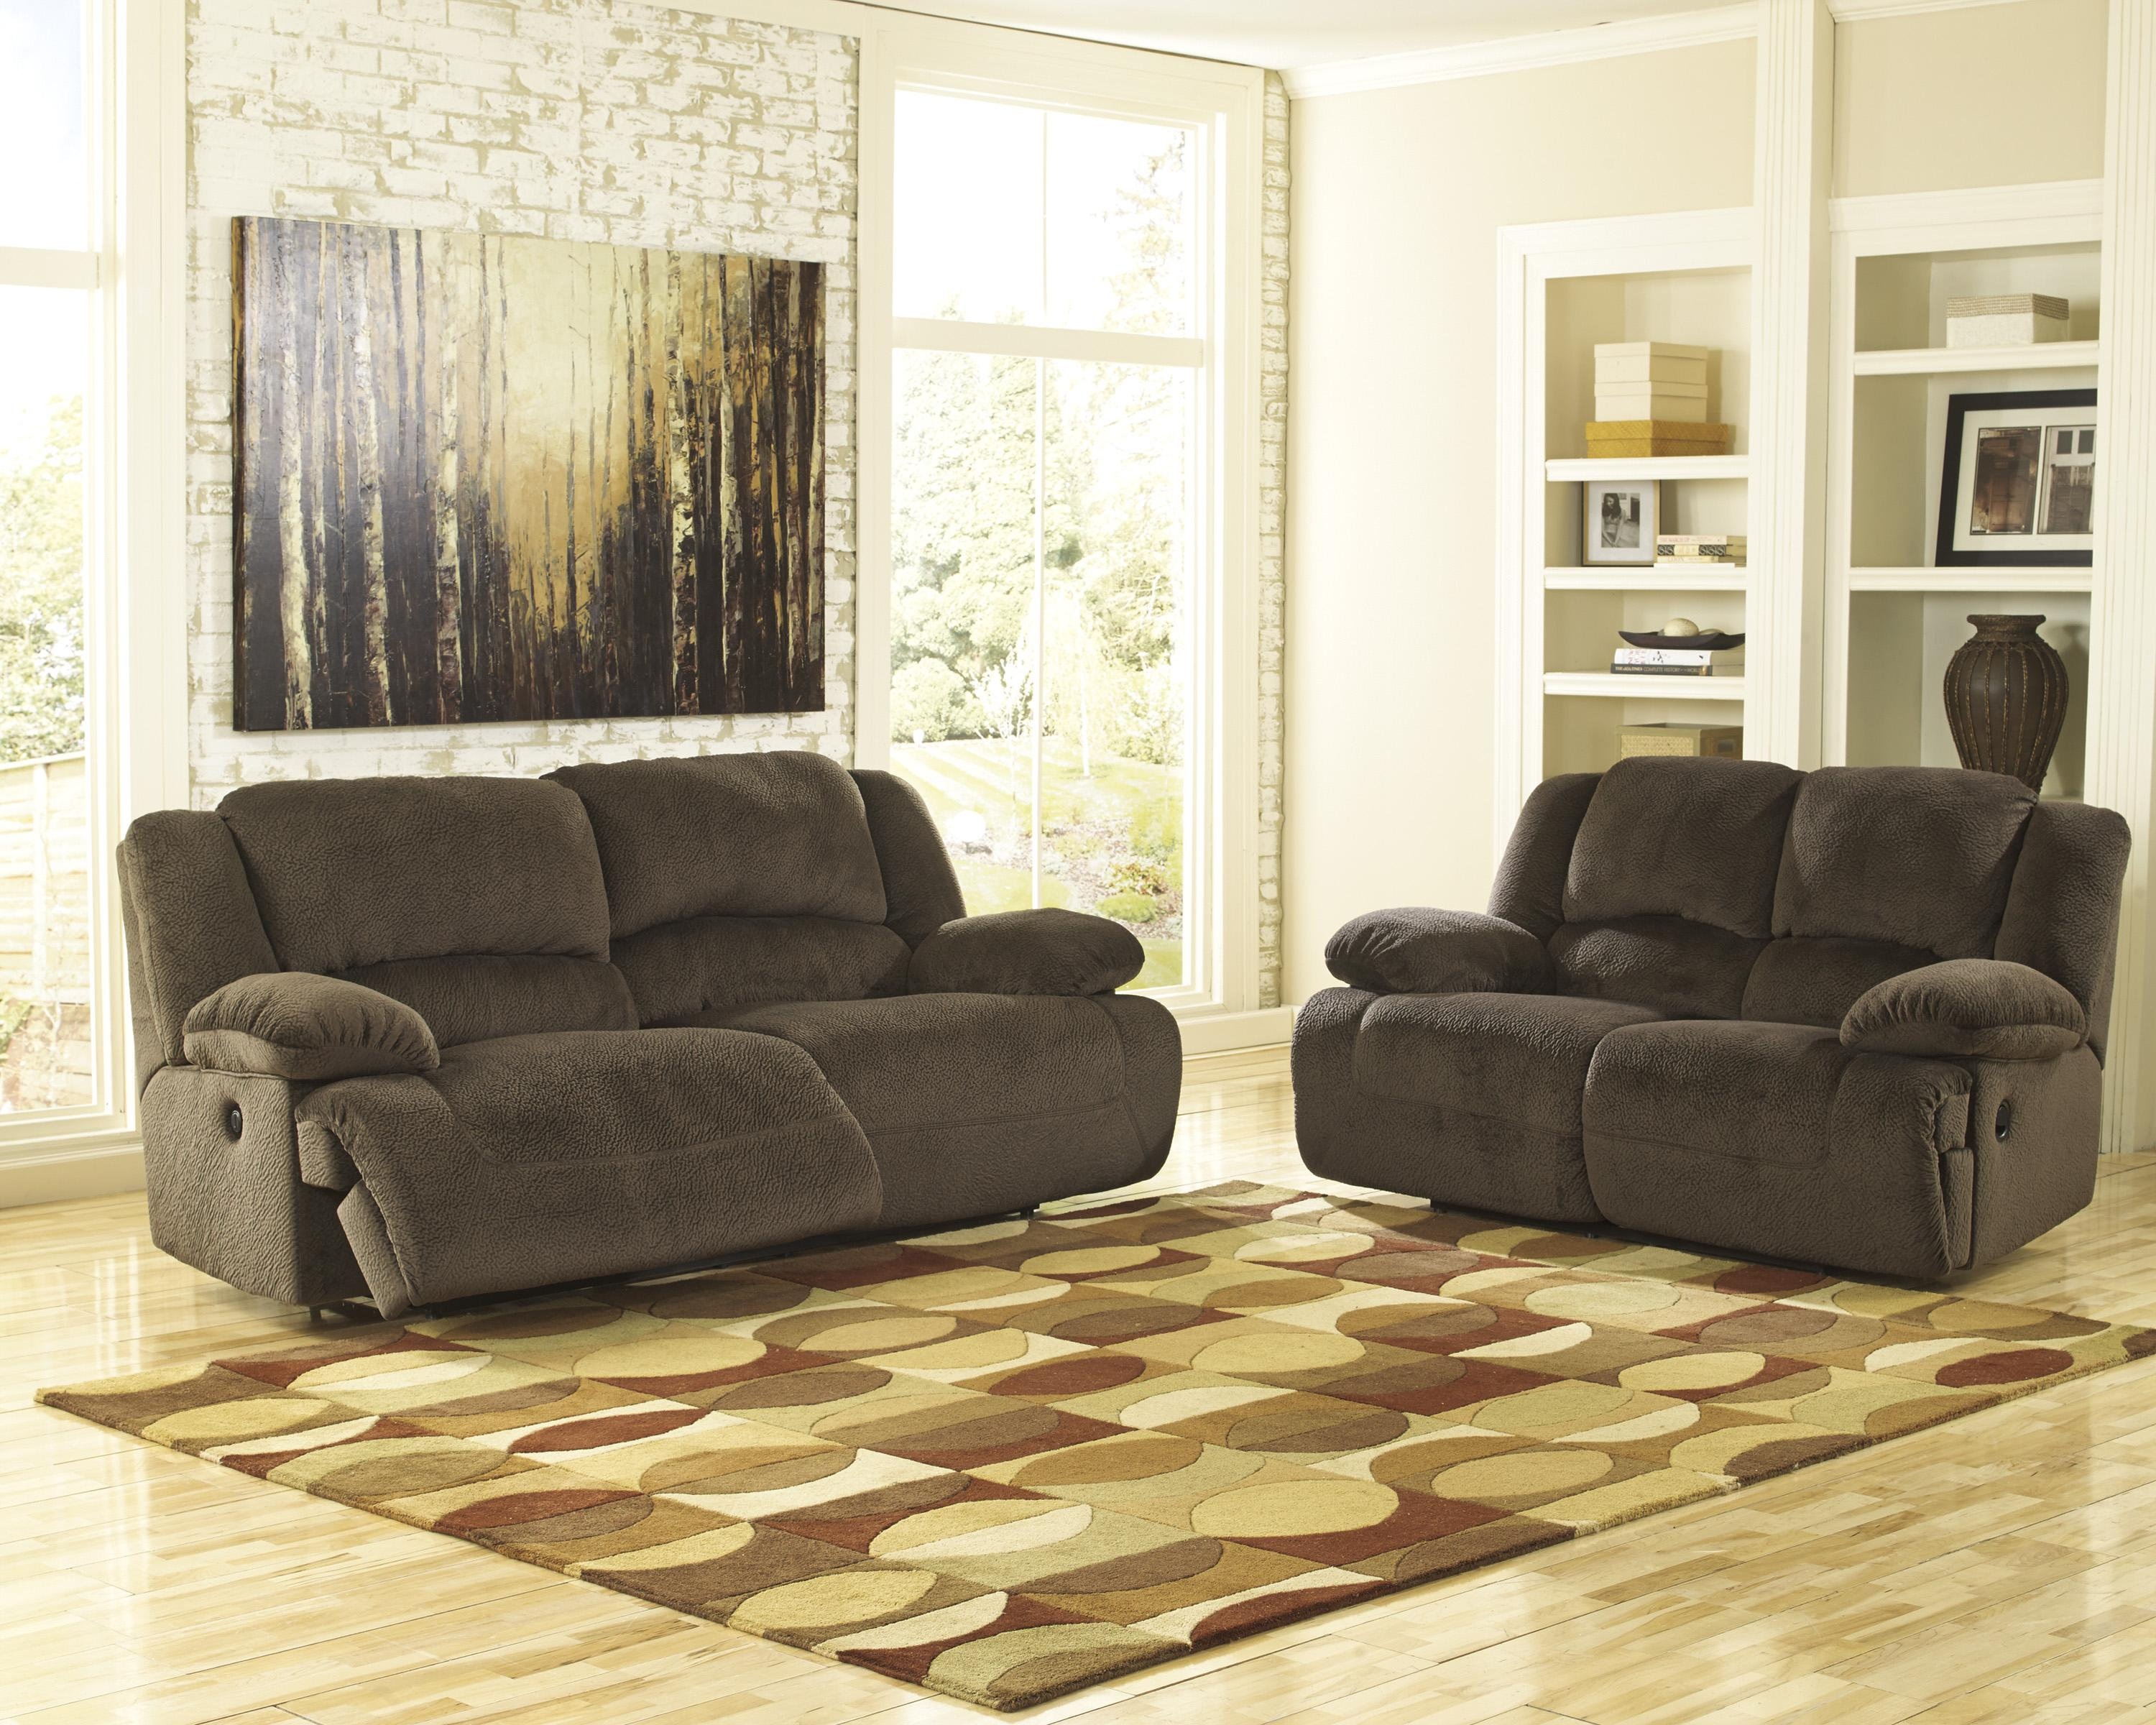 Reclining Living Room Group by Signature Design by Ashley : Wolf and Gardiner Wolf Furniture